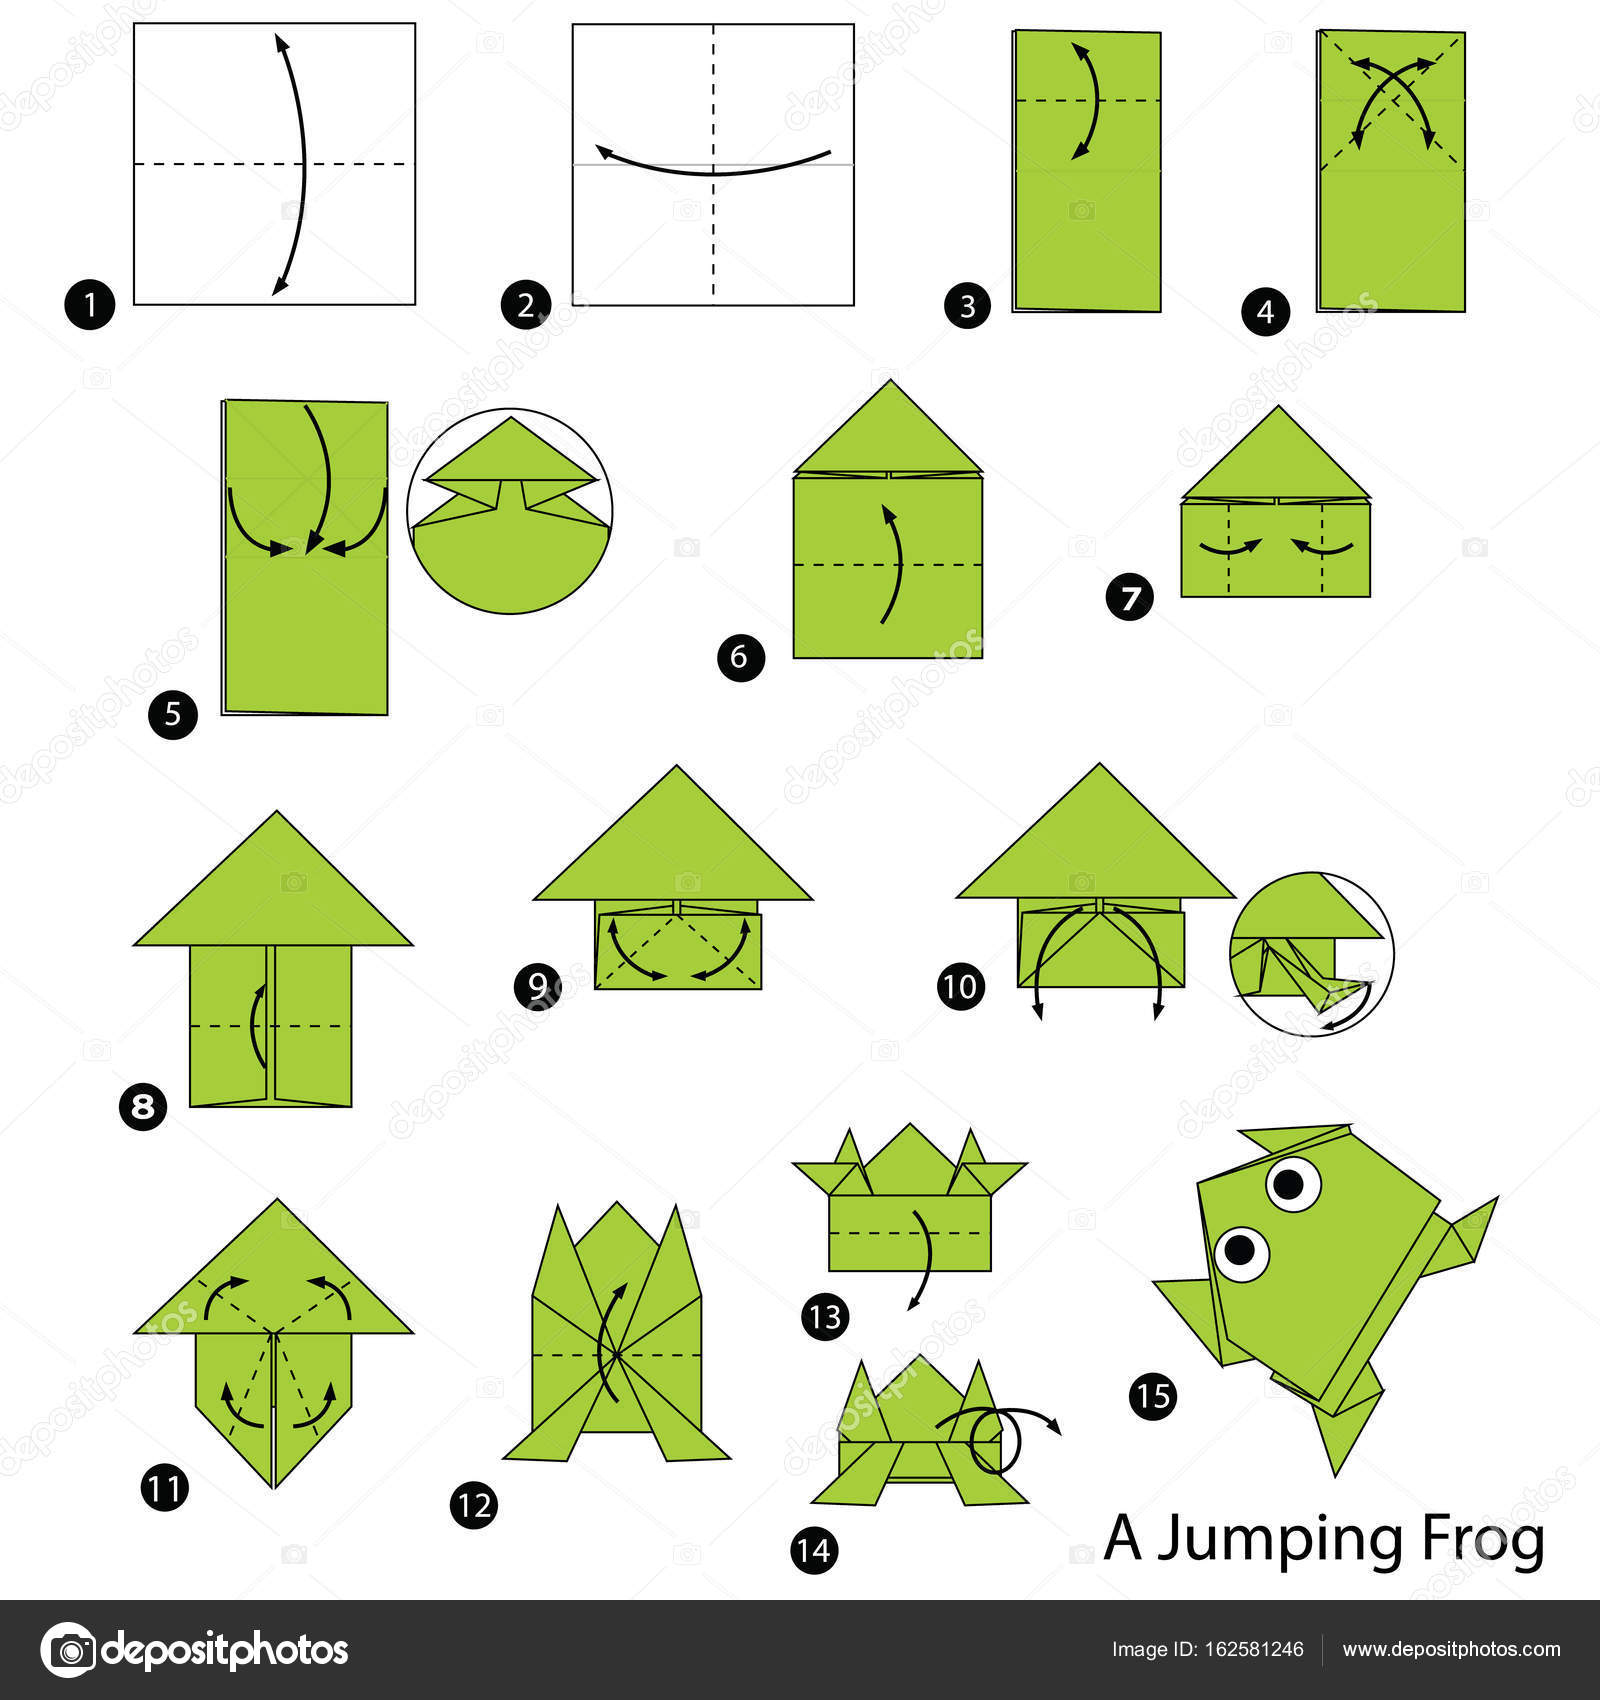 Step by step instructions how to make origami a jumping frog animal toy cartoon cute paper steps origami art vector by pokky334hotmail jeuxipadfo Images